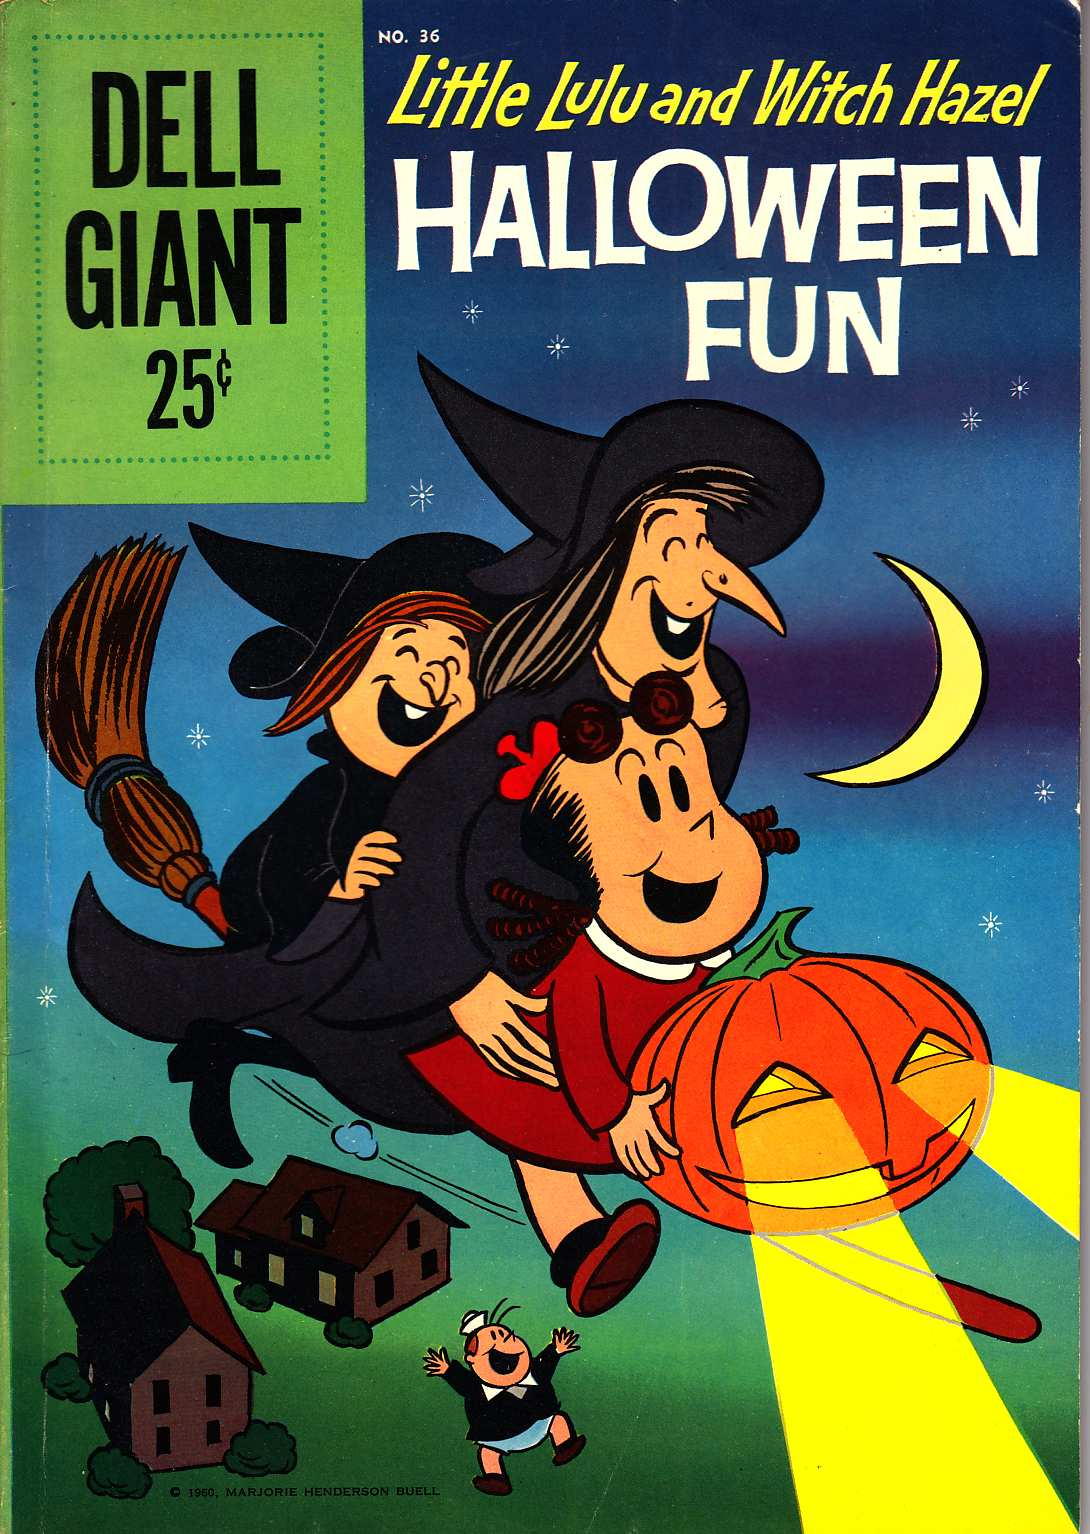 Dell Giant #36 (Lulu and Witch Hazel Halloween Fun) [Dell Comic] LARGE